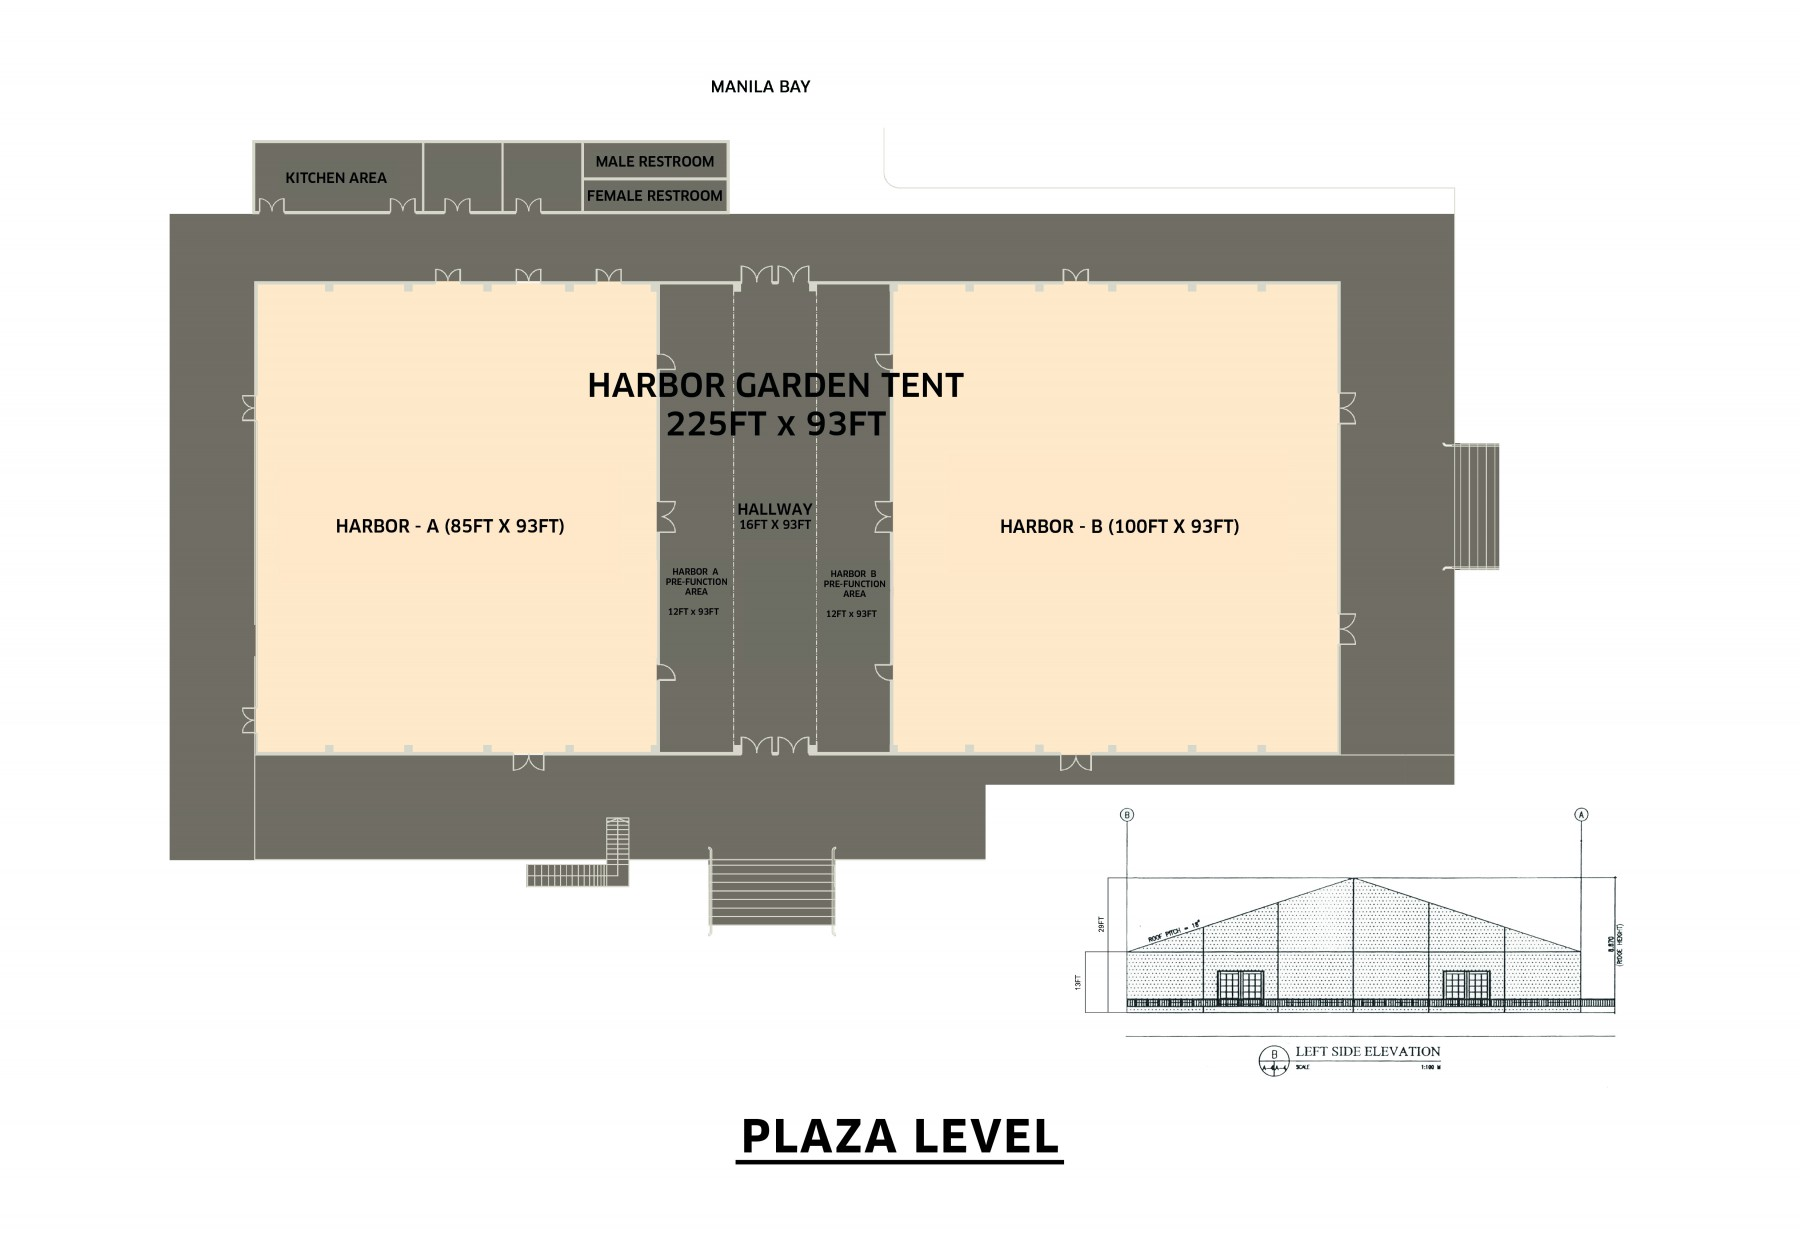 ... Harbor Garden Tent. Venue Floor Plan  sc 1 st  Sofitel Philippine Plaza Manila & Sofitel Philippine Plaza Manila - Harbor Garden Tent